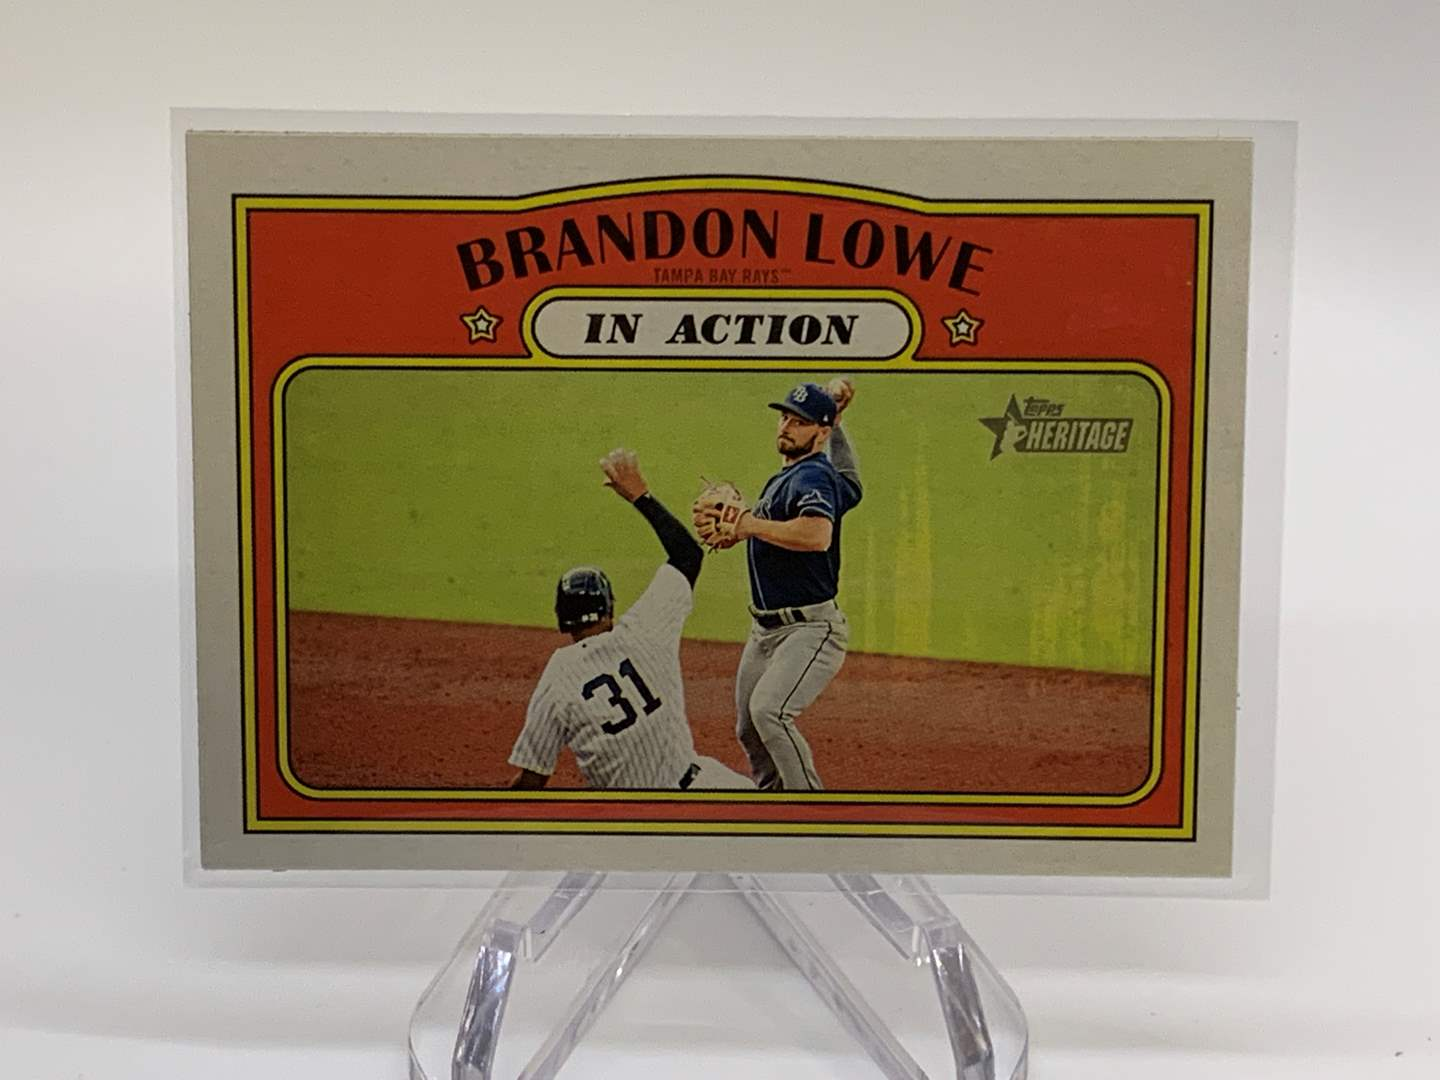 Lot # 50 2021 Topps Heritage BRANDON LOWE In Action (main image)